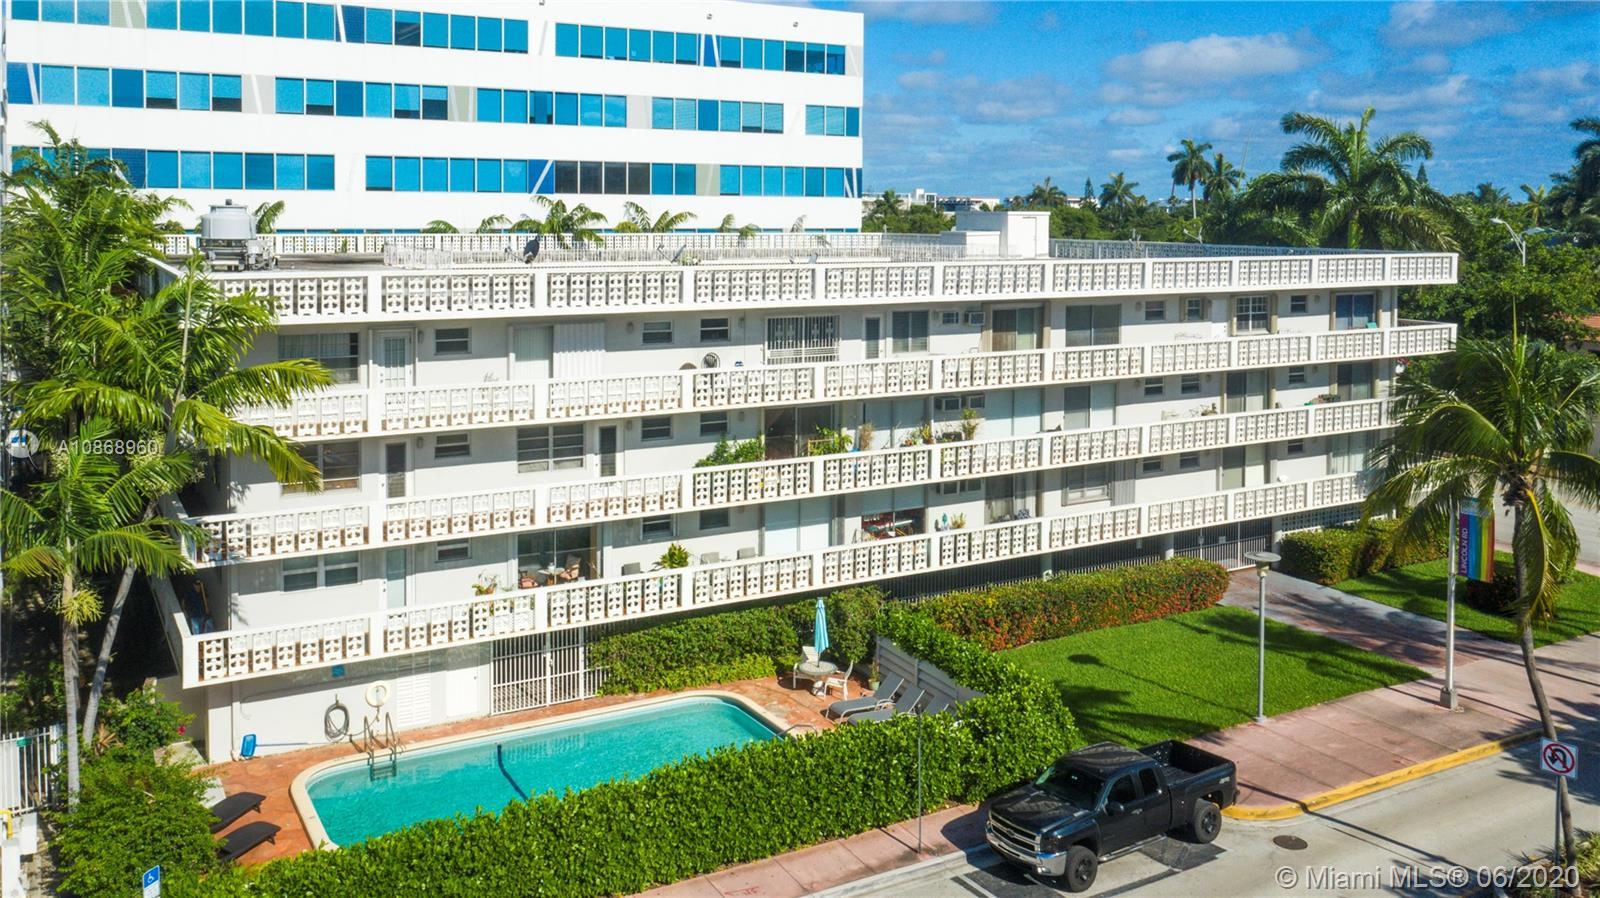 1698 Jefferson Ave # 28, Miami Beach, Florida 33139, 1 Bedroom Bedrooms, ,1 BathroomBathrooms,Residential,For Sale,1698 Jefferson Ave # 28,A10868960